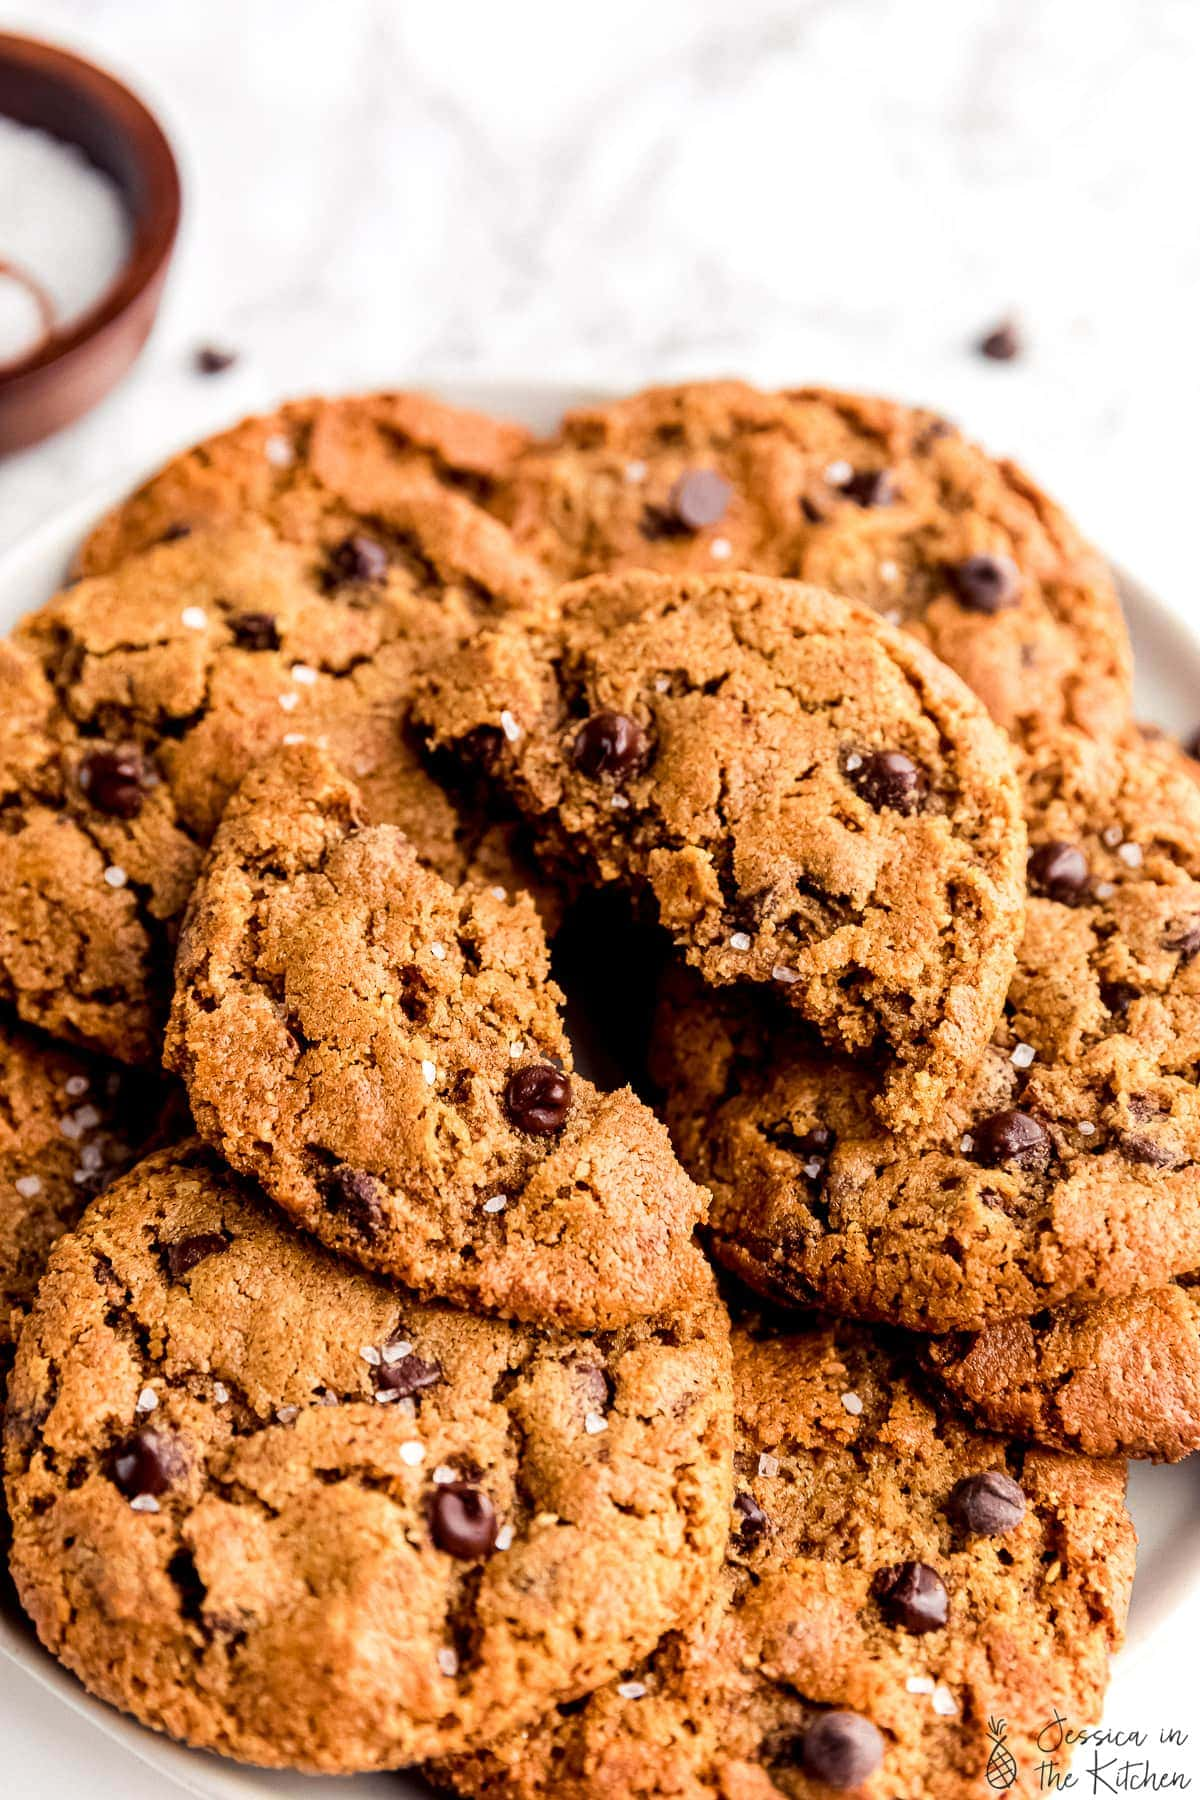 5 ingredient chocolate chip cookies stacked on each other on a plate in front of a jar of salt one of the cookies on top broken in half